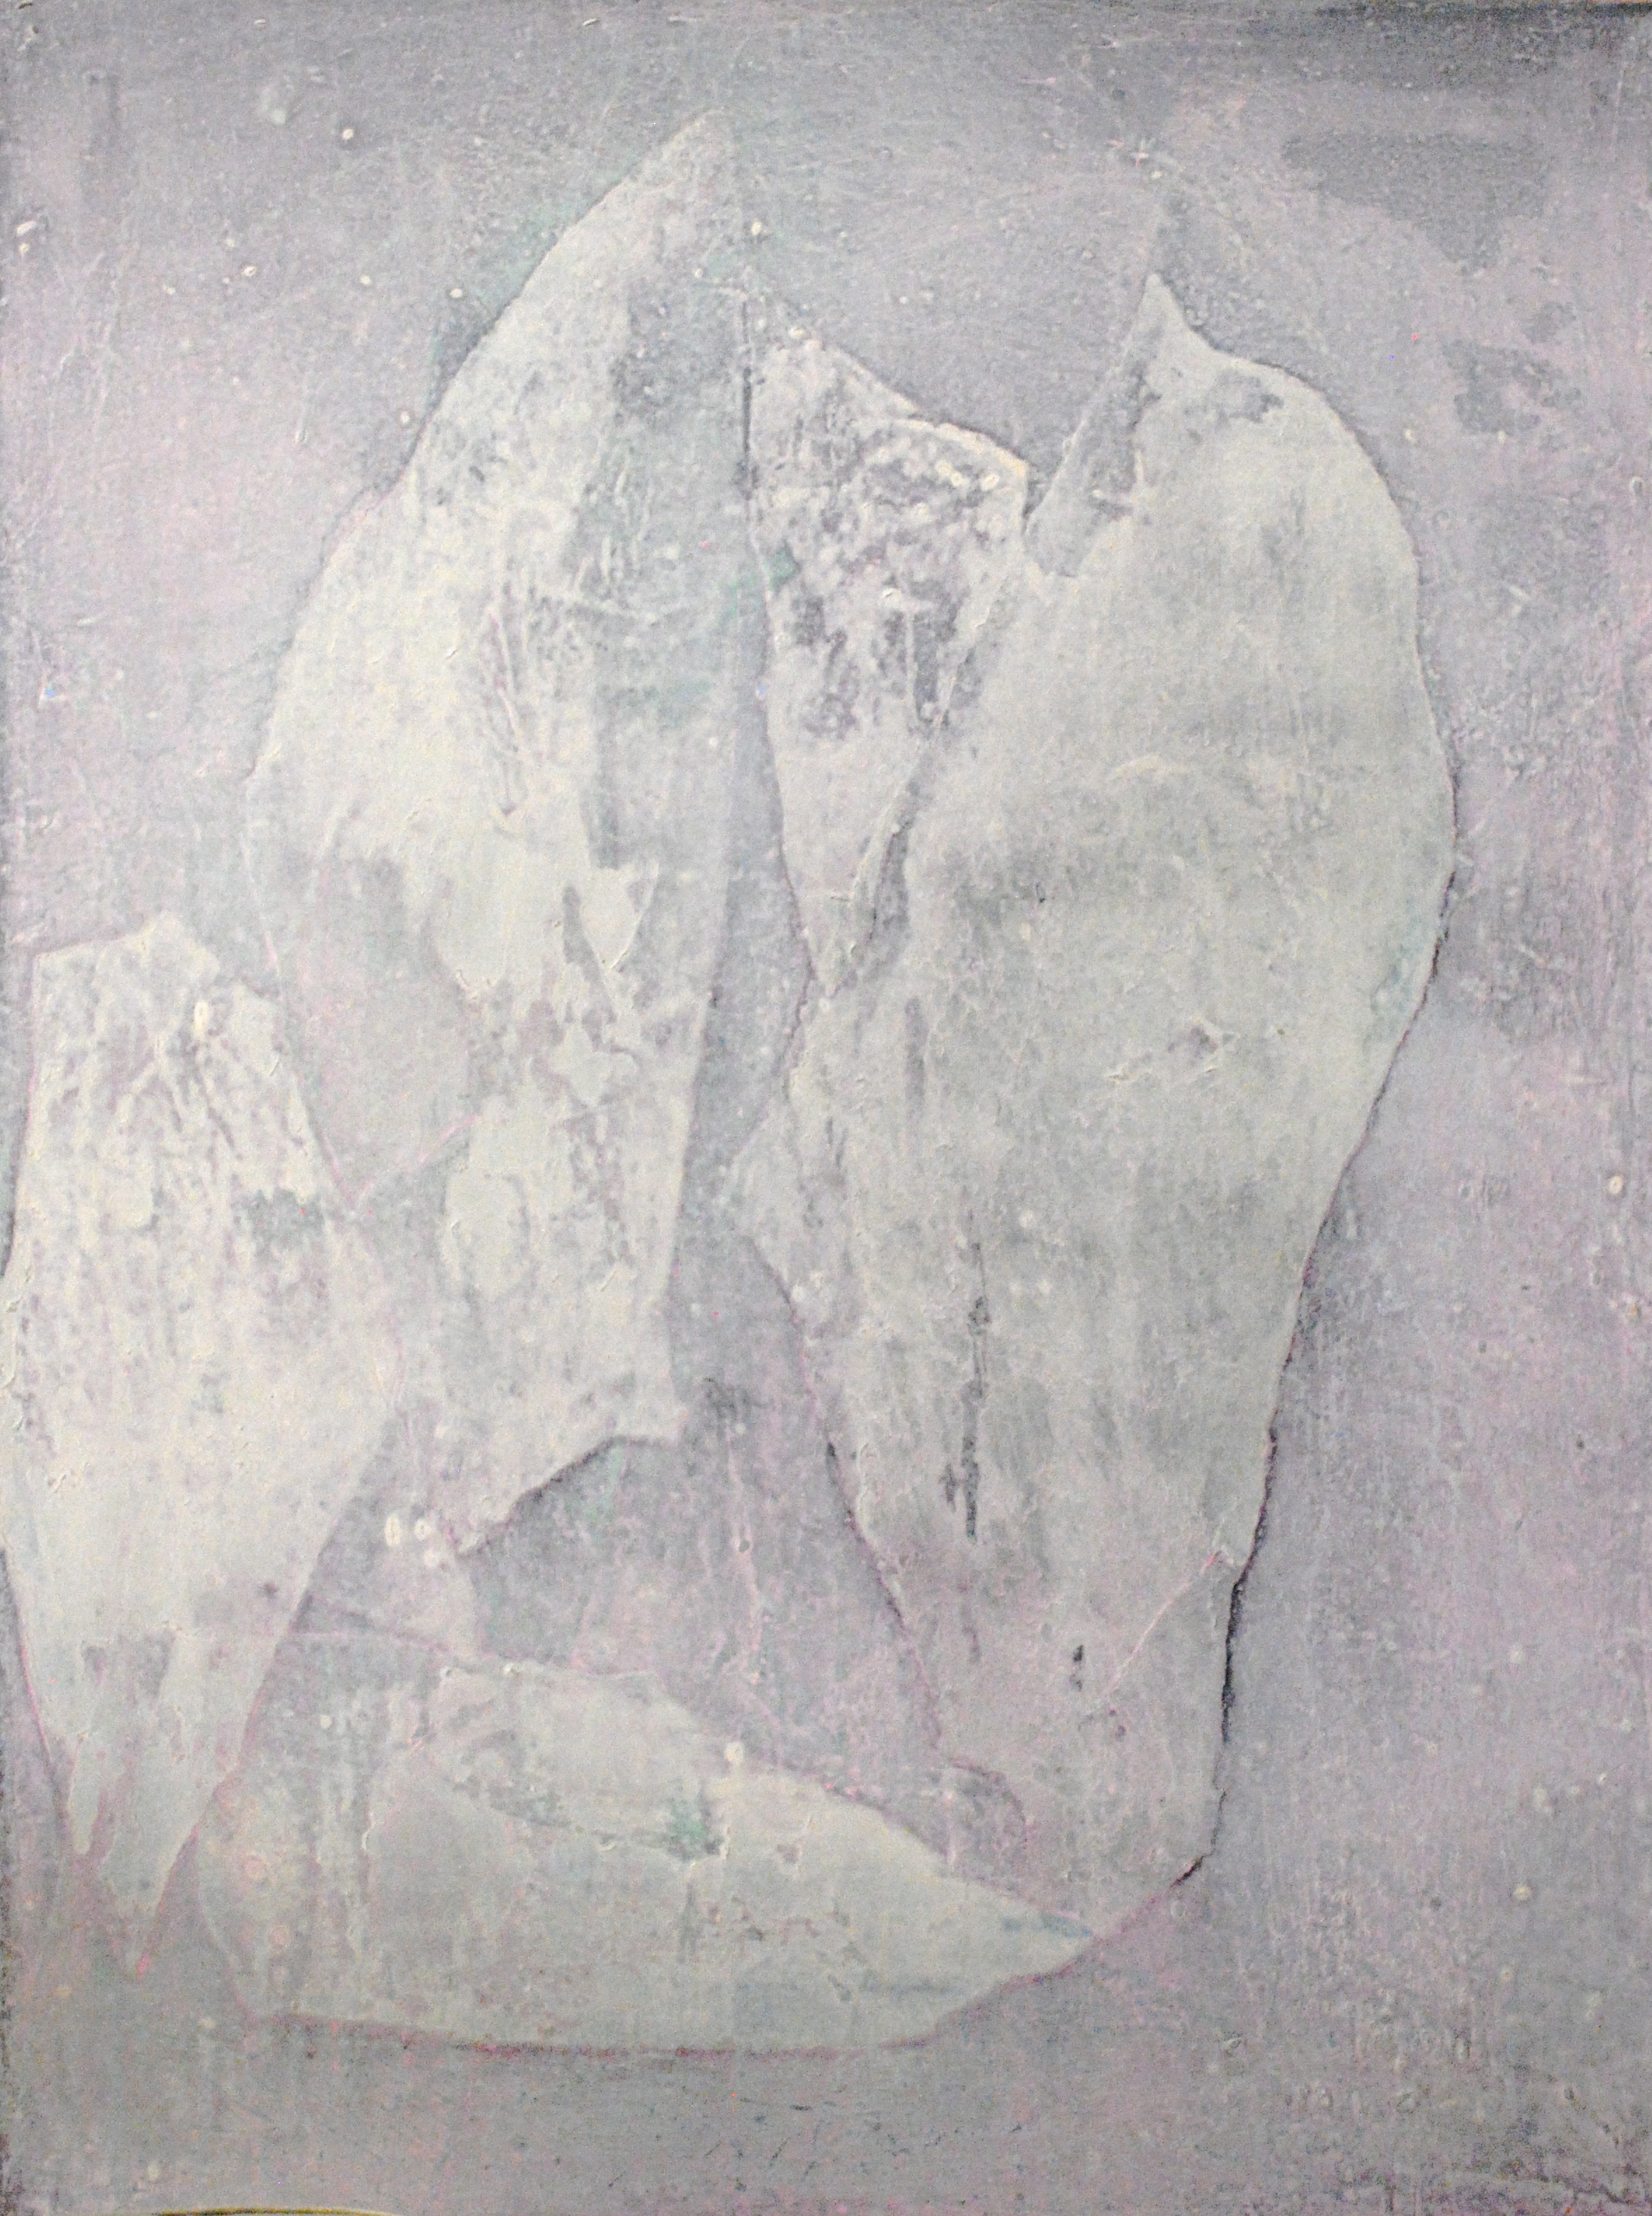 SoHyun Bae, Wrapped Shards: Vessel #4, 2003, rice-paper and pure pigment on canvas, 40 x 30 inches